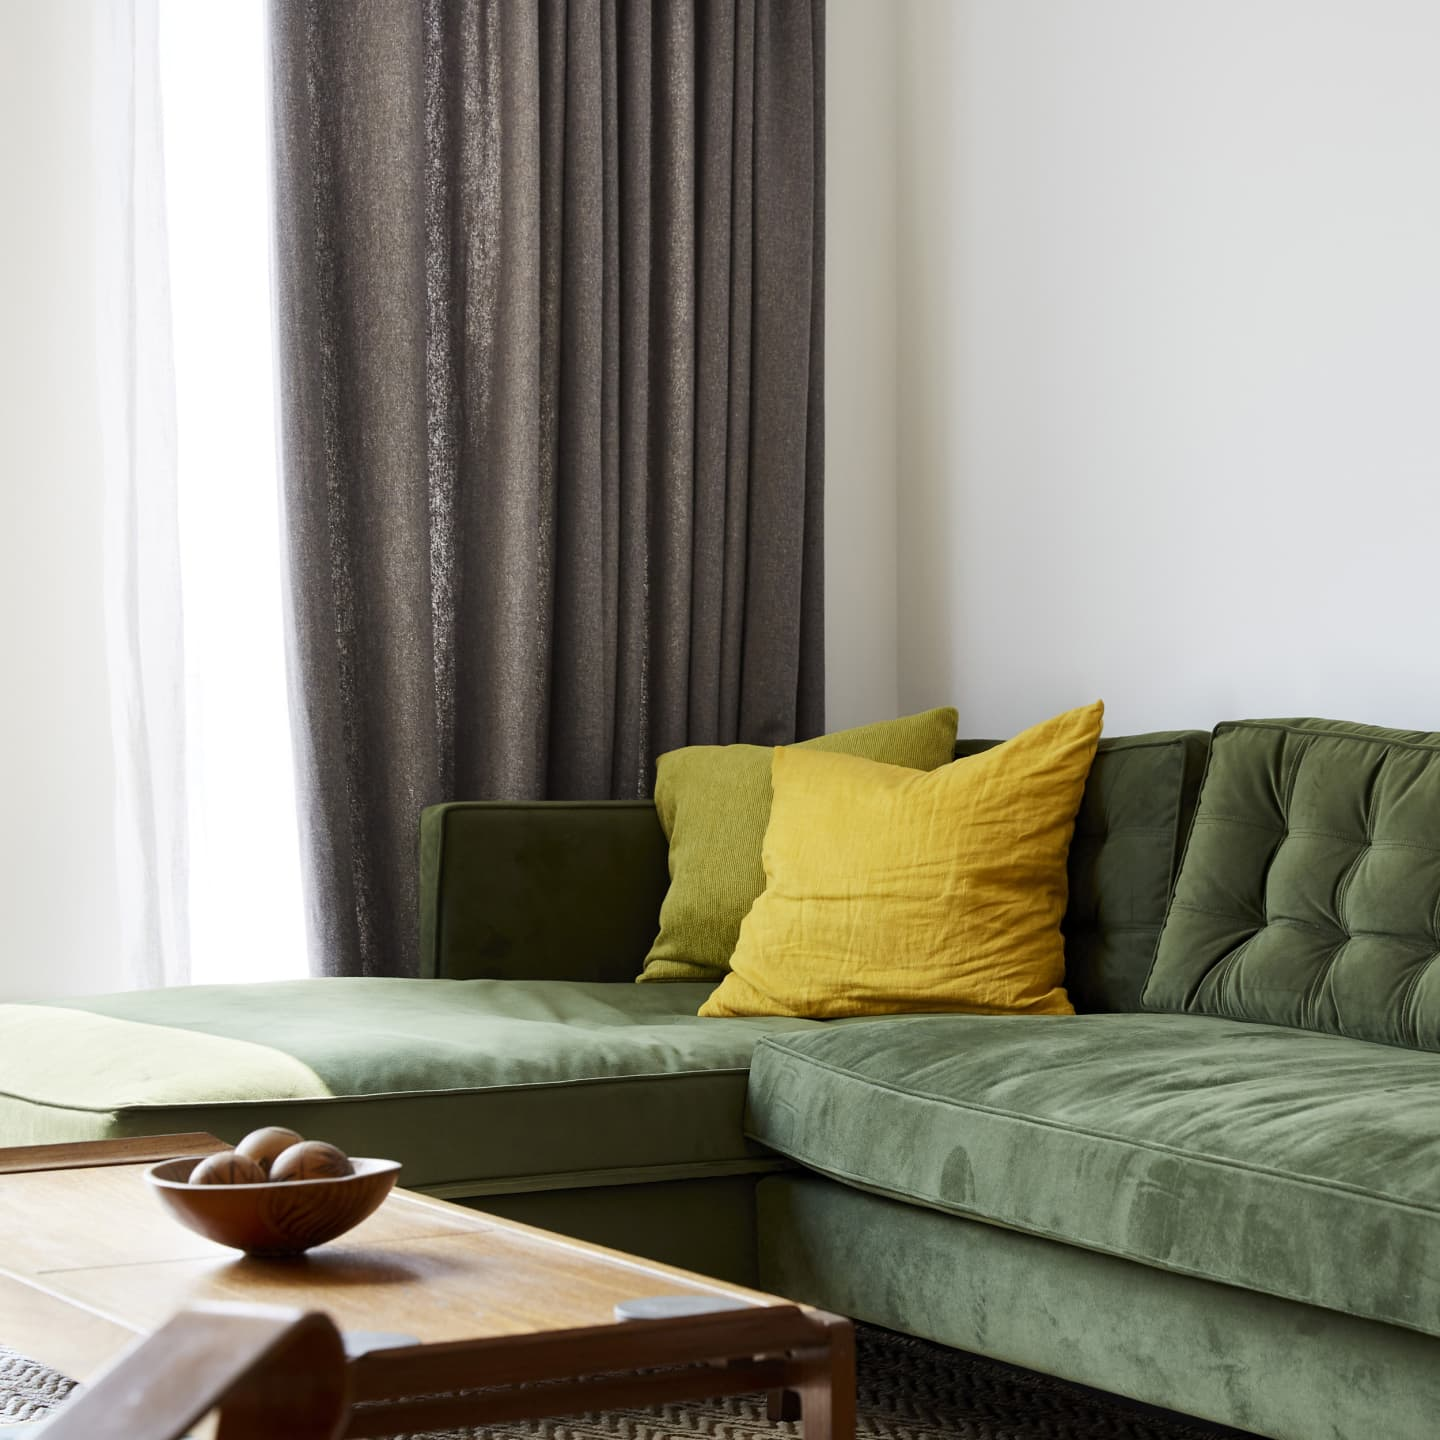 sofa with grey curtains in background